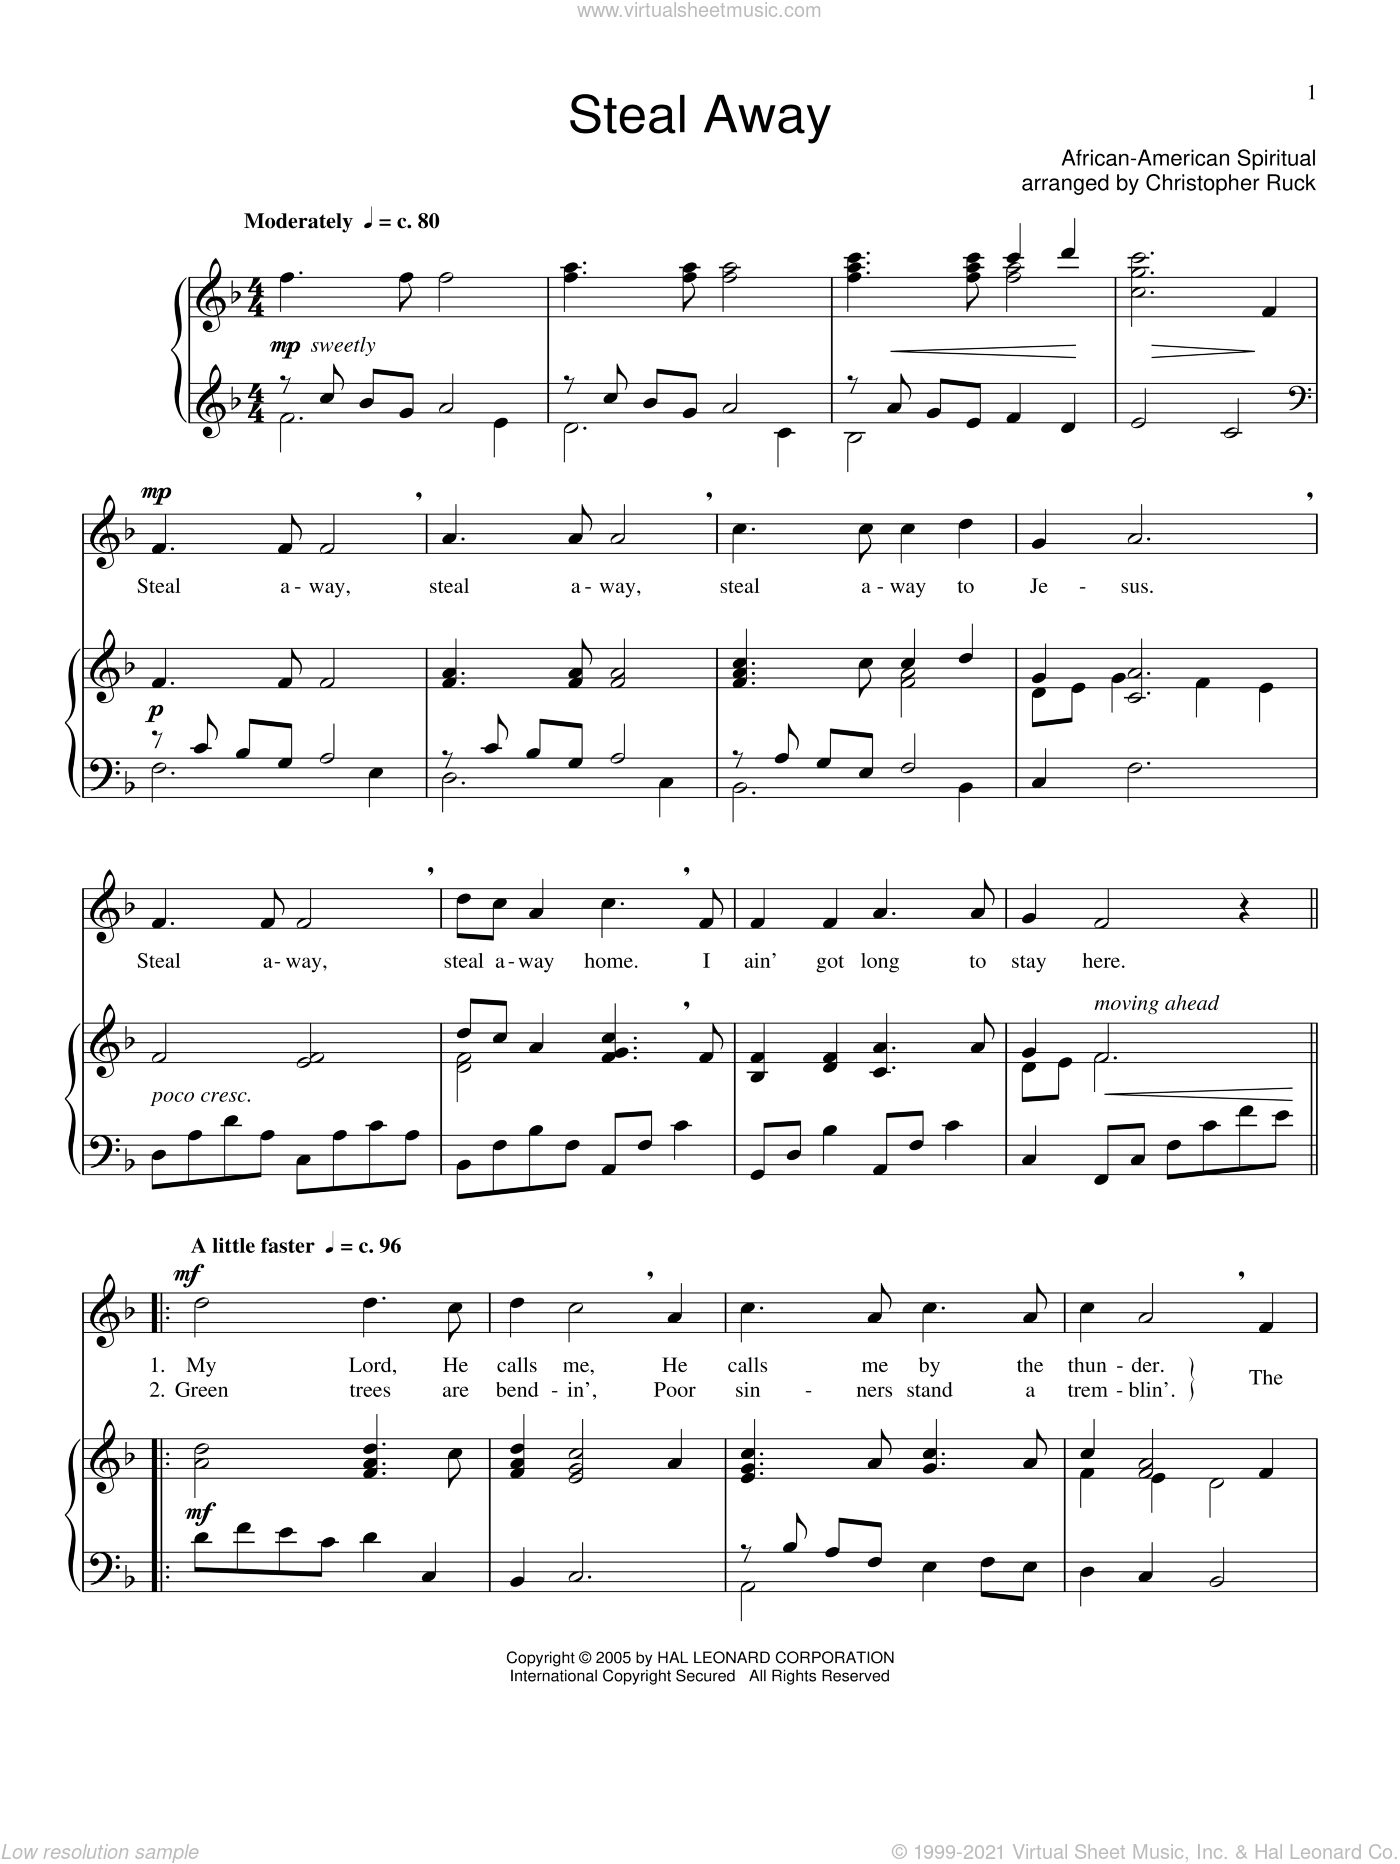 Steal Away sheet music for voice and piano